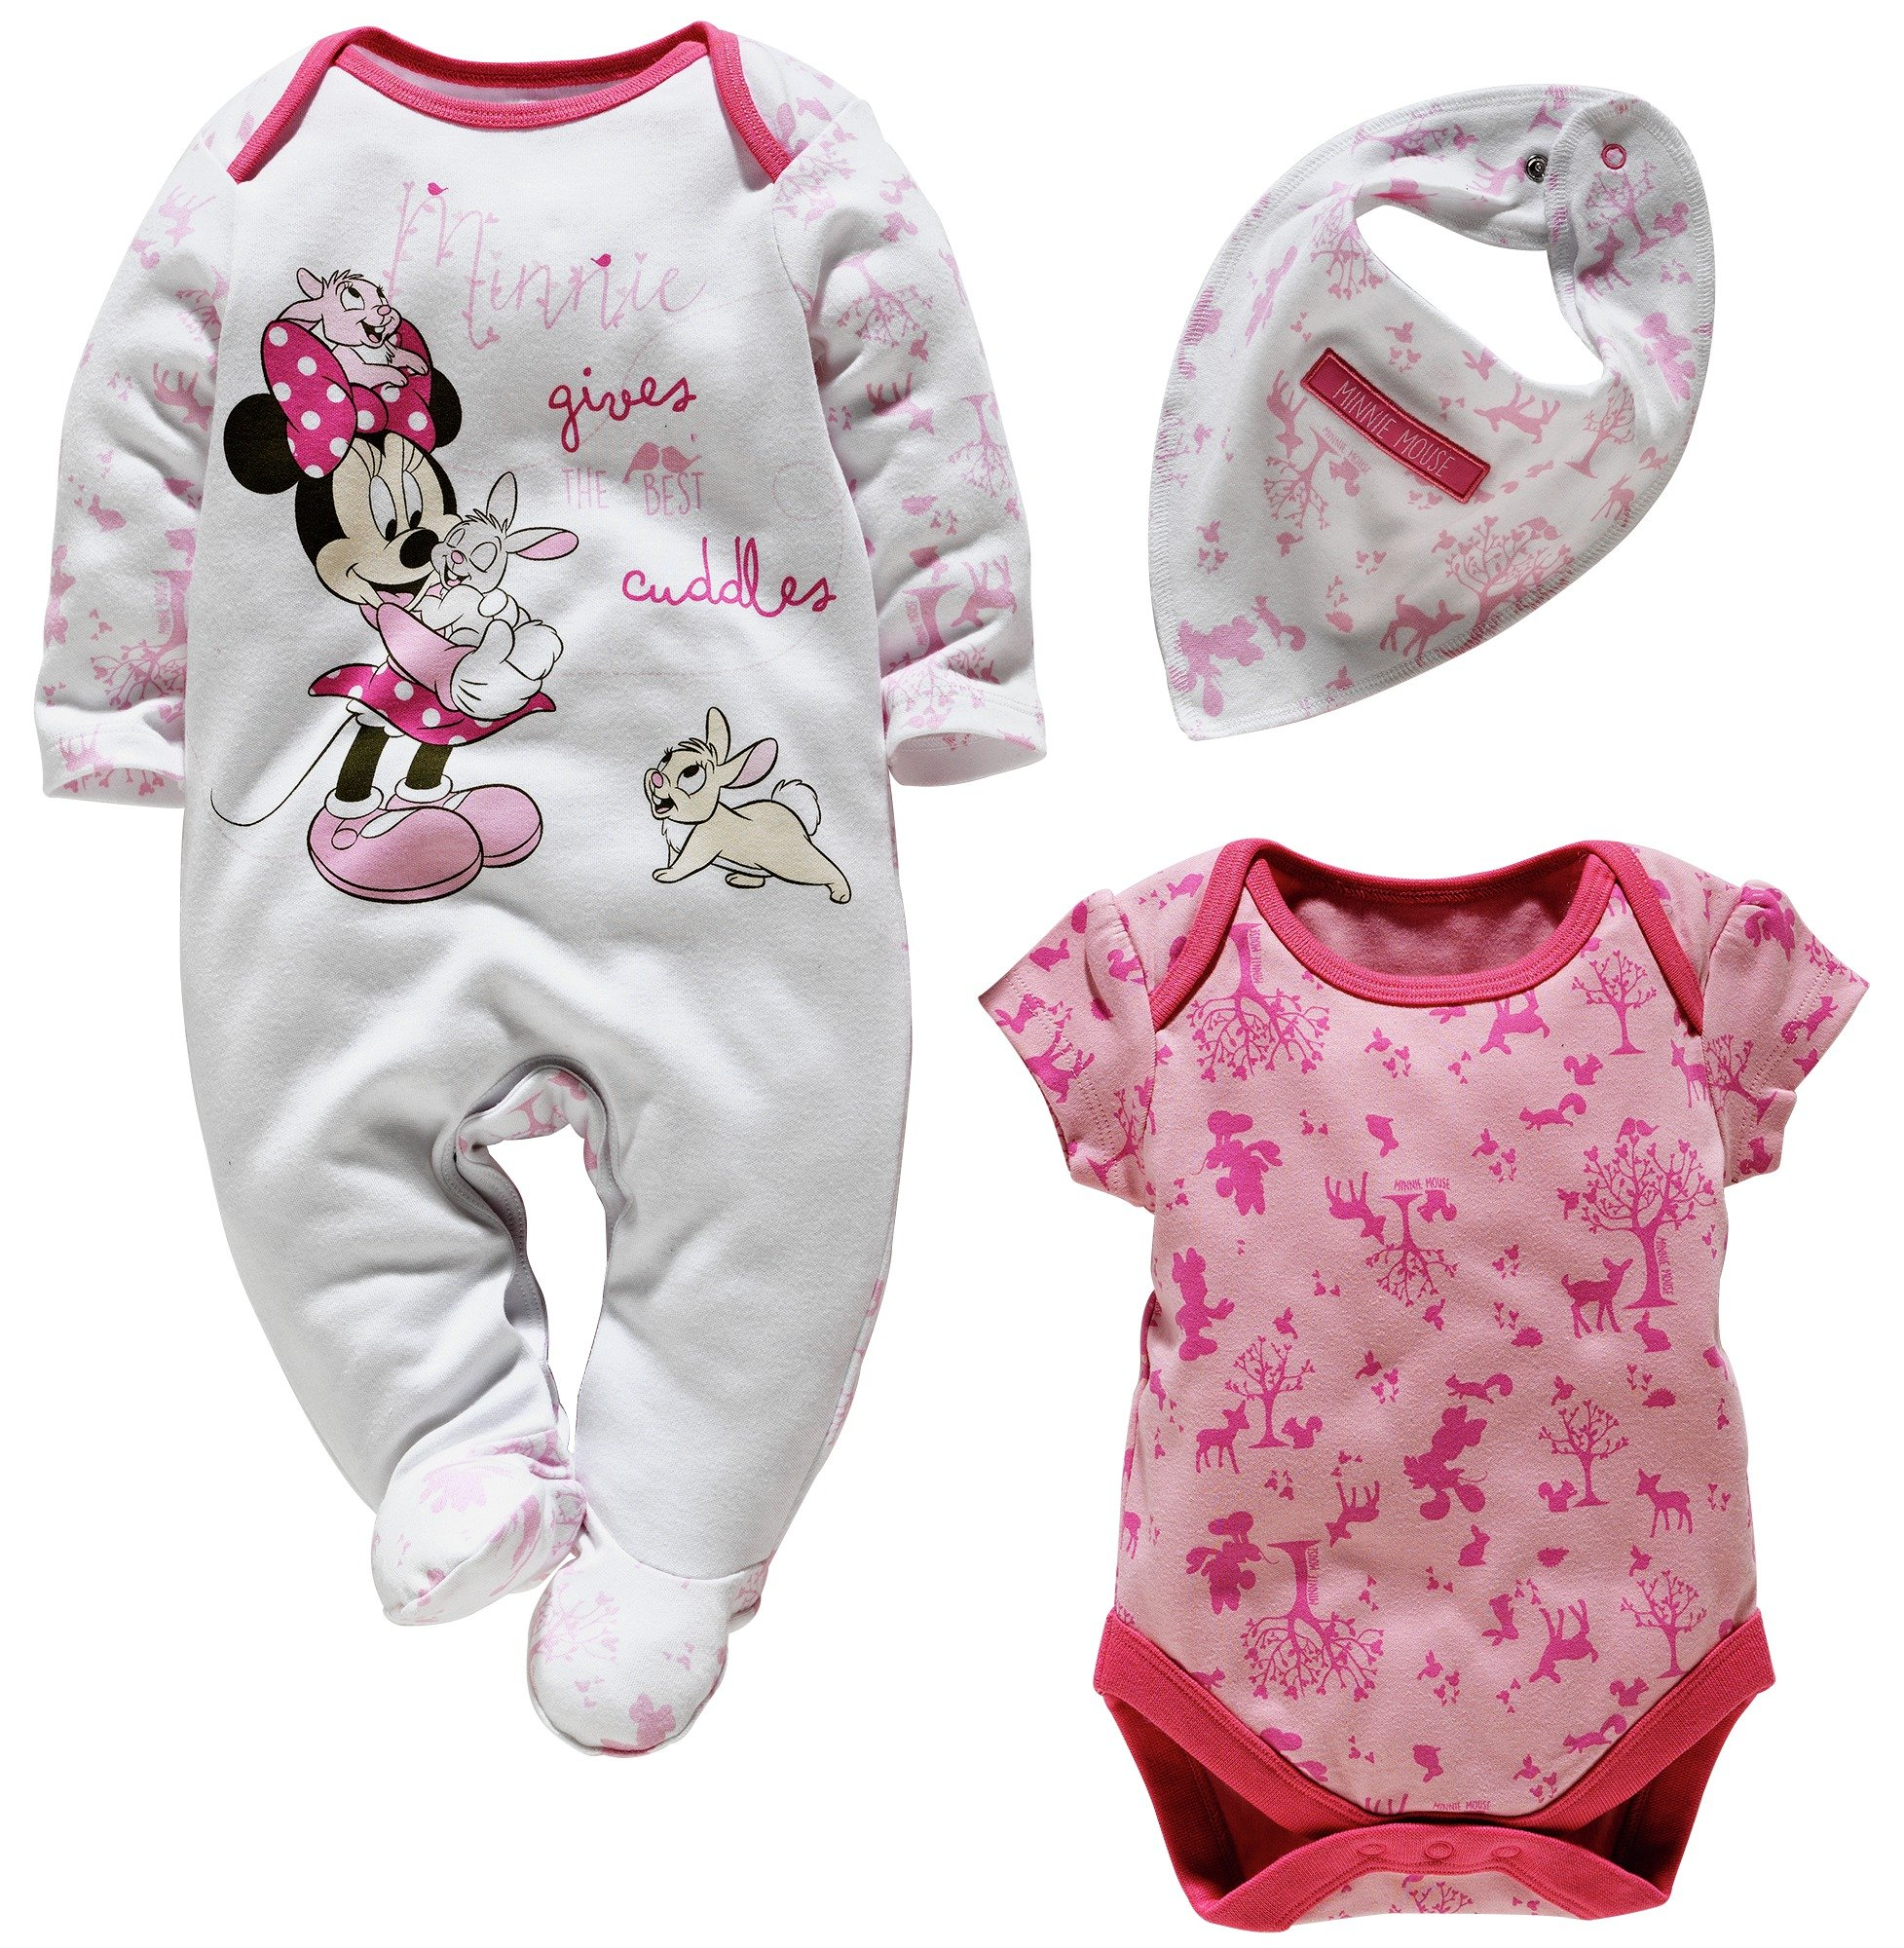 Baby Minnie Mouse Gift Set - 3-6 Months